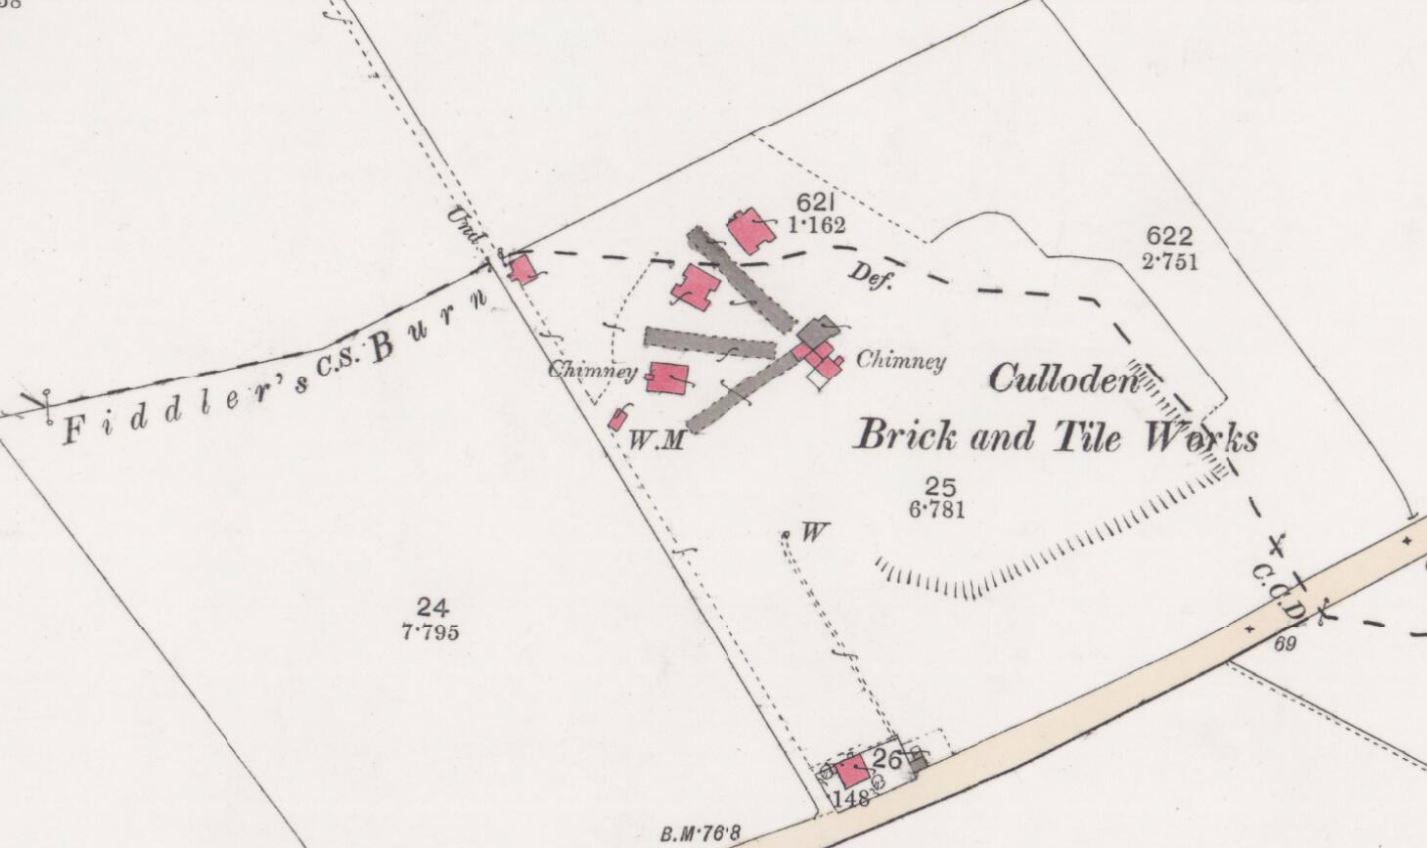 1878 Culloden brickworks, Newton, Inverness